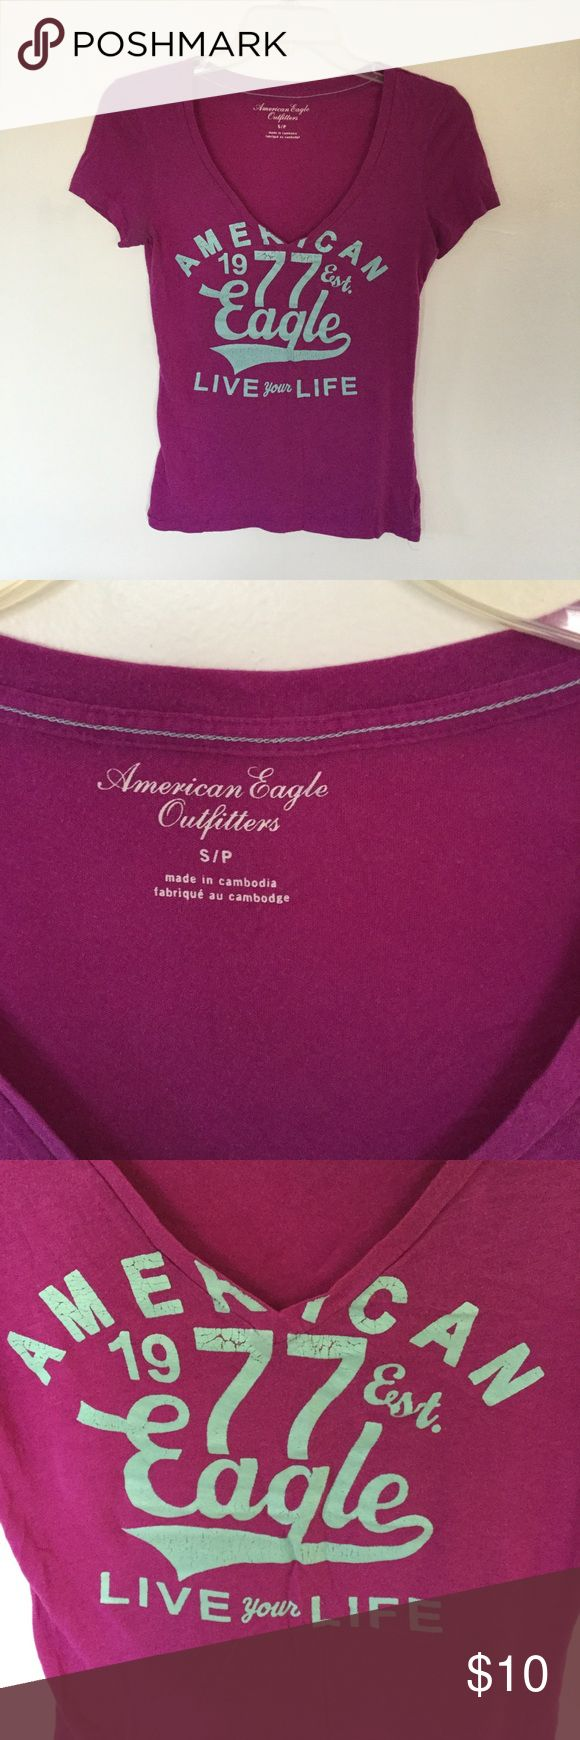 American Eagle Purple Tee Super cute American eagle purple tee with light blue script. Gently used, size small.  IF THIS ISNT SOLD BY 1/12/17 IT WILL BE DONATED, ACCEPTING MOST OFFERS AND I BUNDLE!  REDUCED 1/7/17 American Eagle Outfitters Tops Tees - Short Sleeve